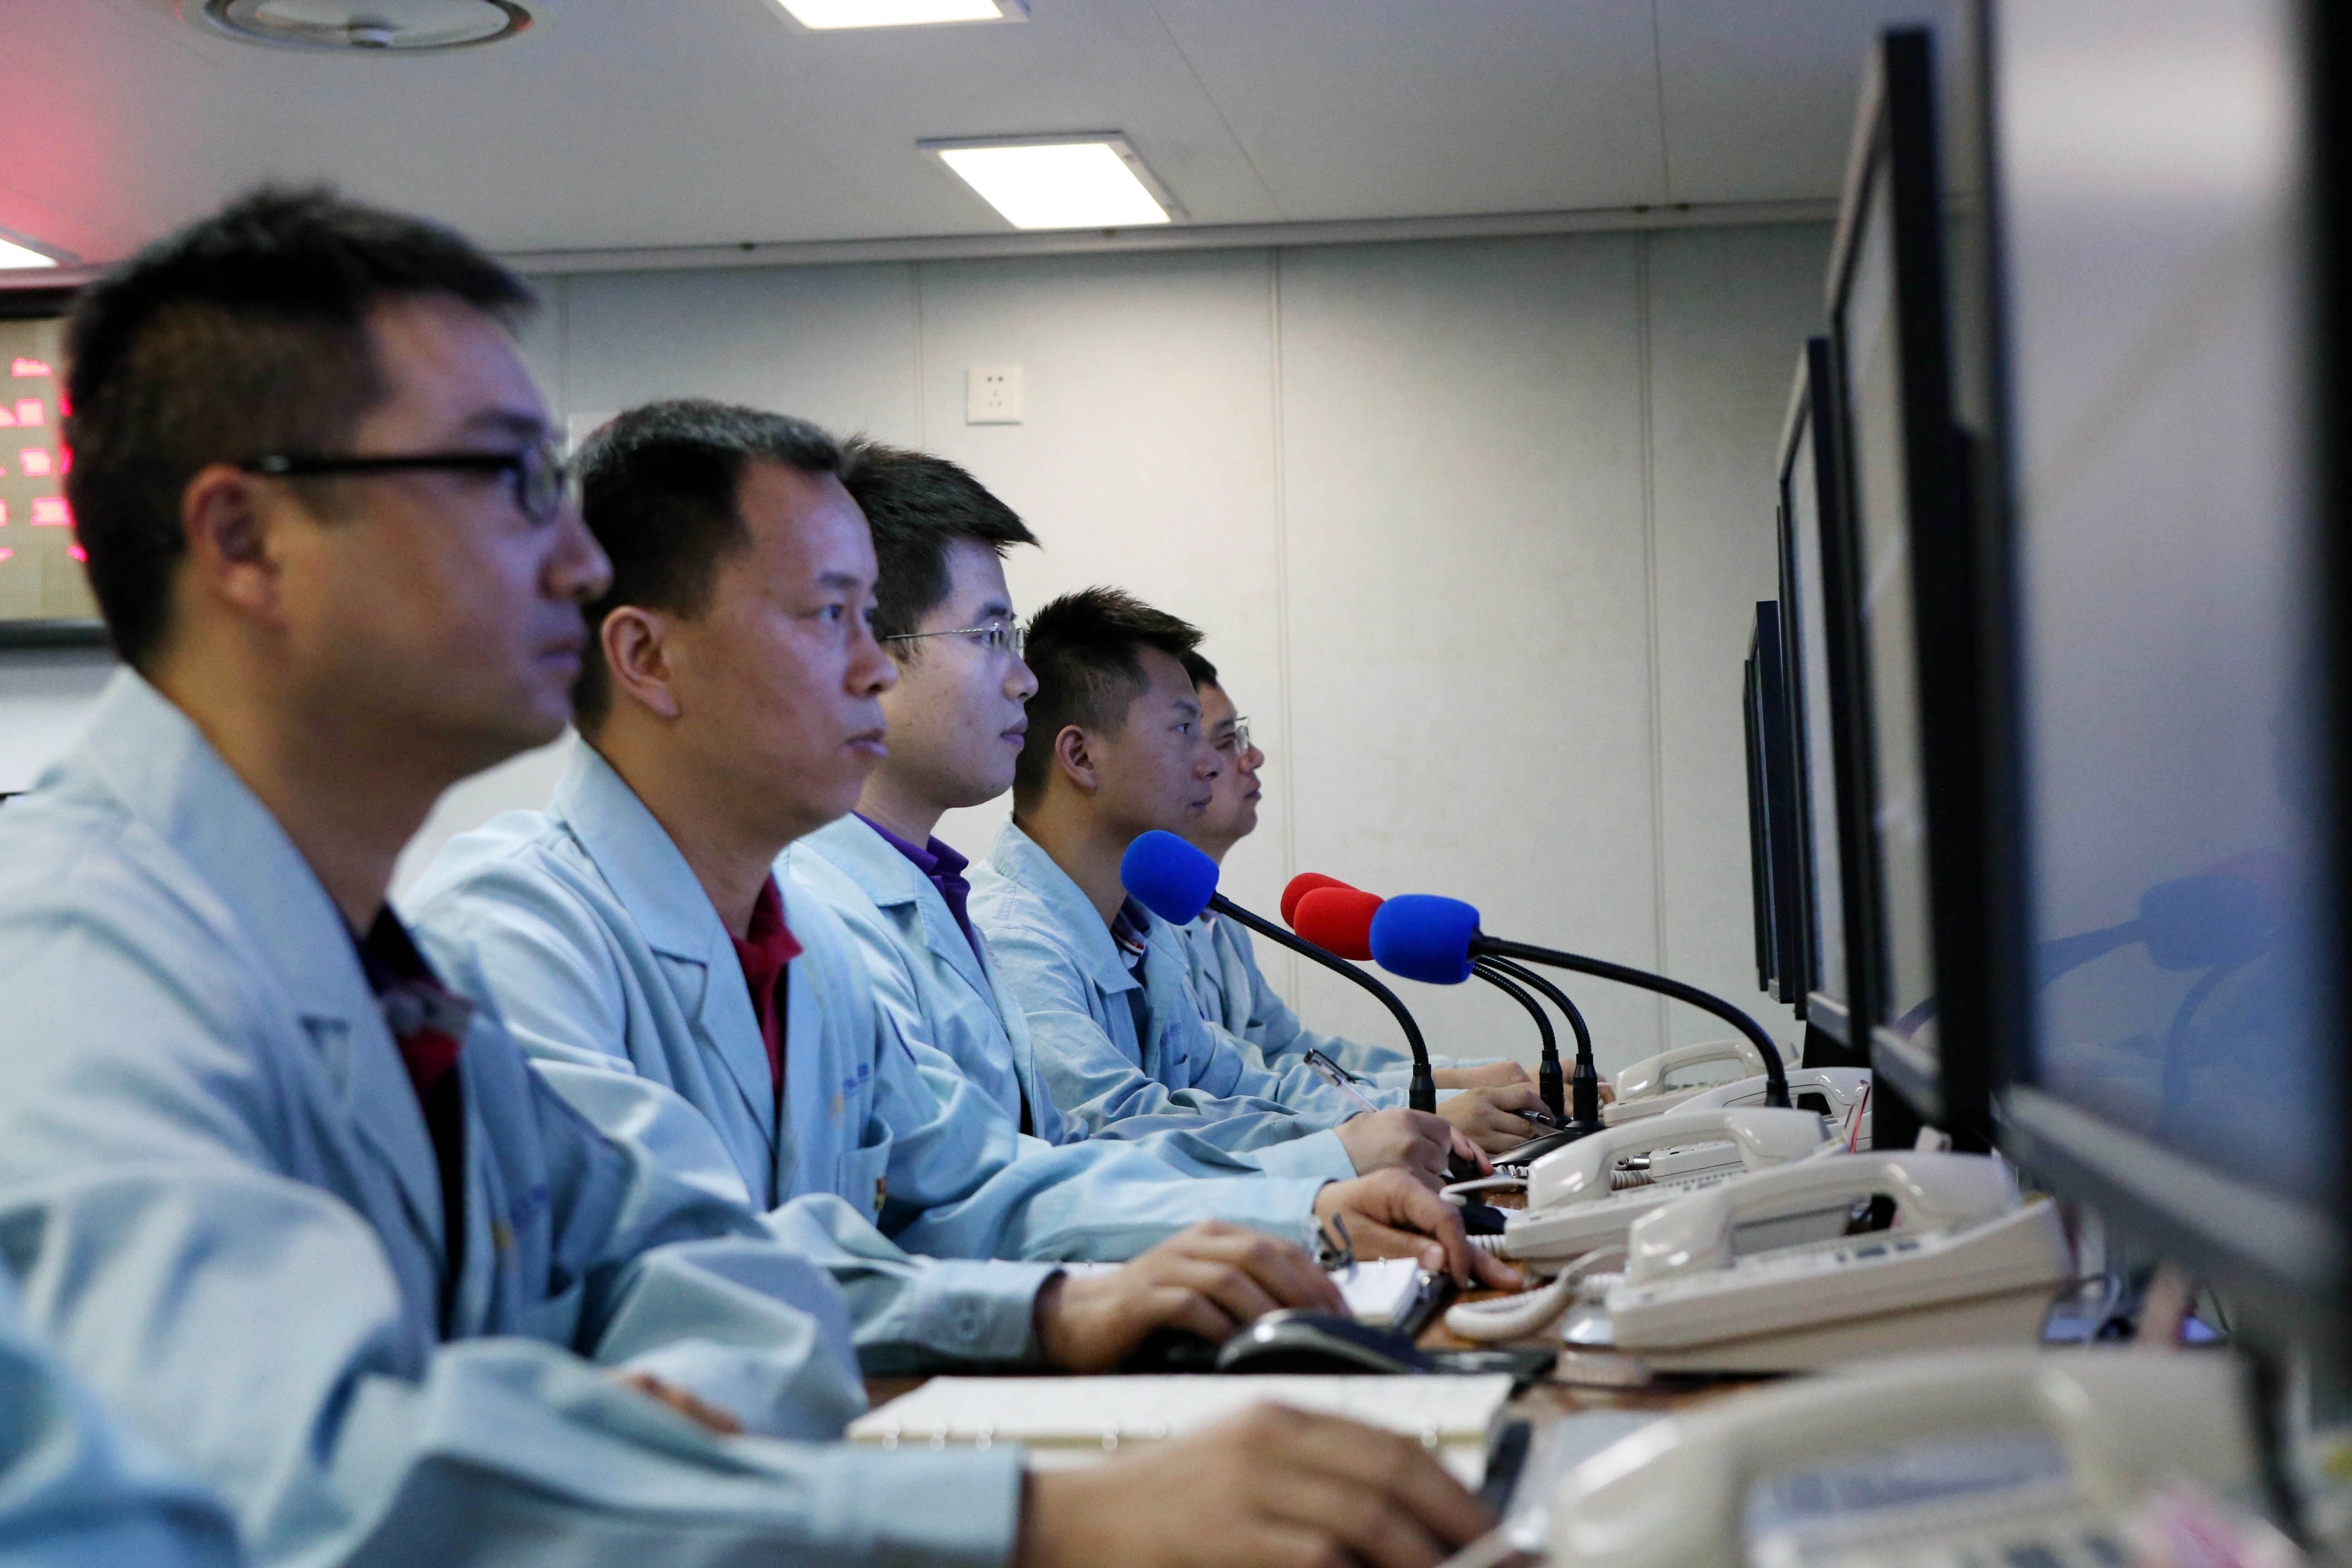 Staff members work during a maritime monitoring mission of a satellite launch on China's spacecraft tracking ship Yuanwang-3, June 25, 2019, after China sent a satellite of the Beidou Navigation Satellite System into space.